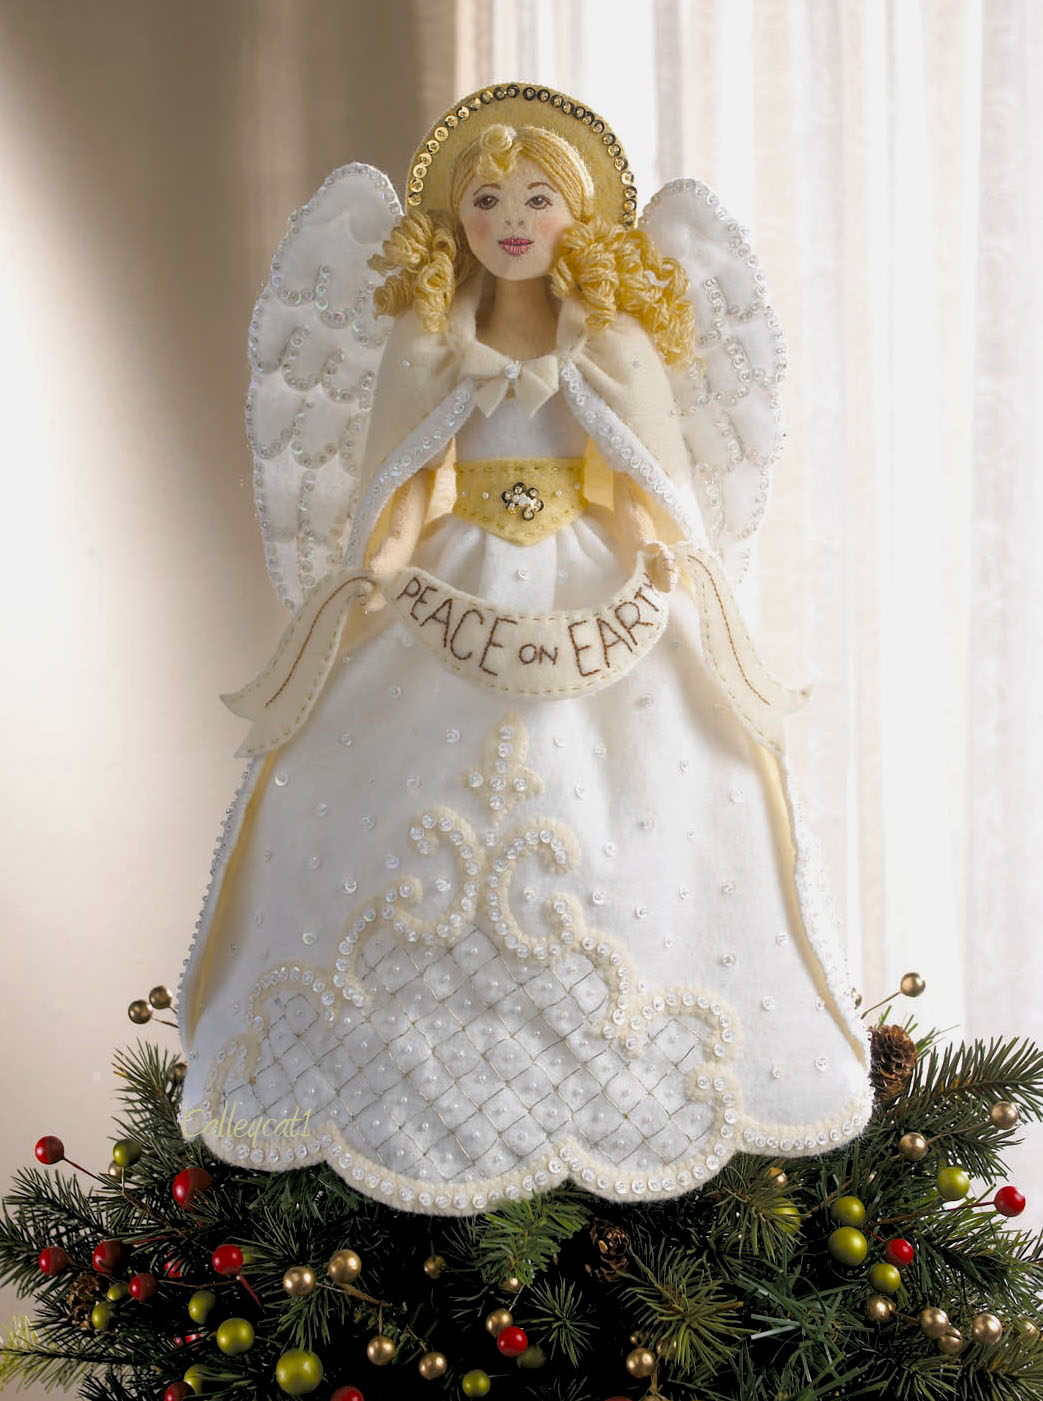 S Fthinternational Com Wp Content Uploads 20  - Christmas Tree Angel Toppers